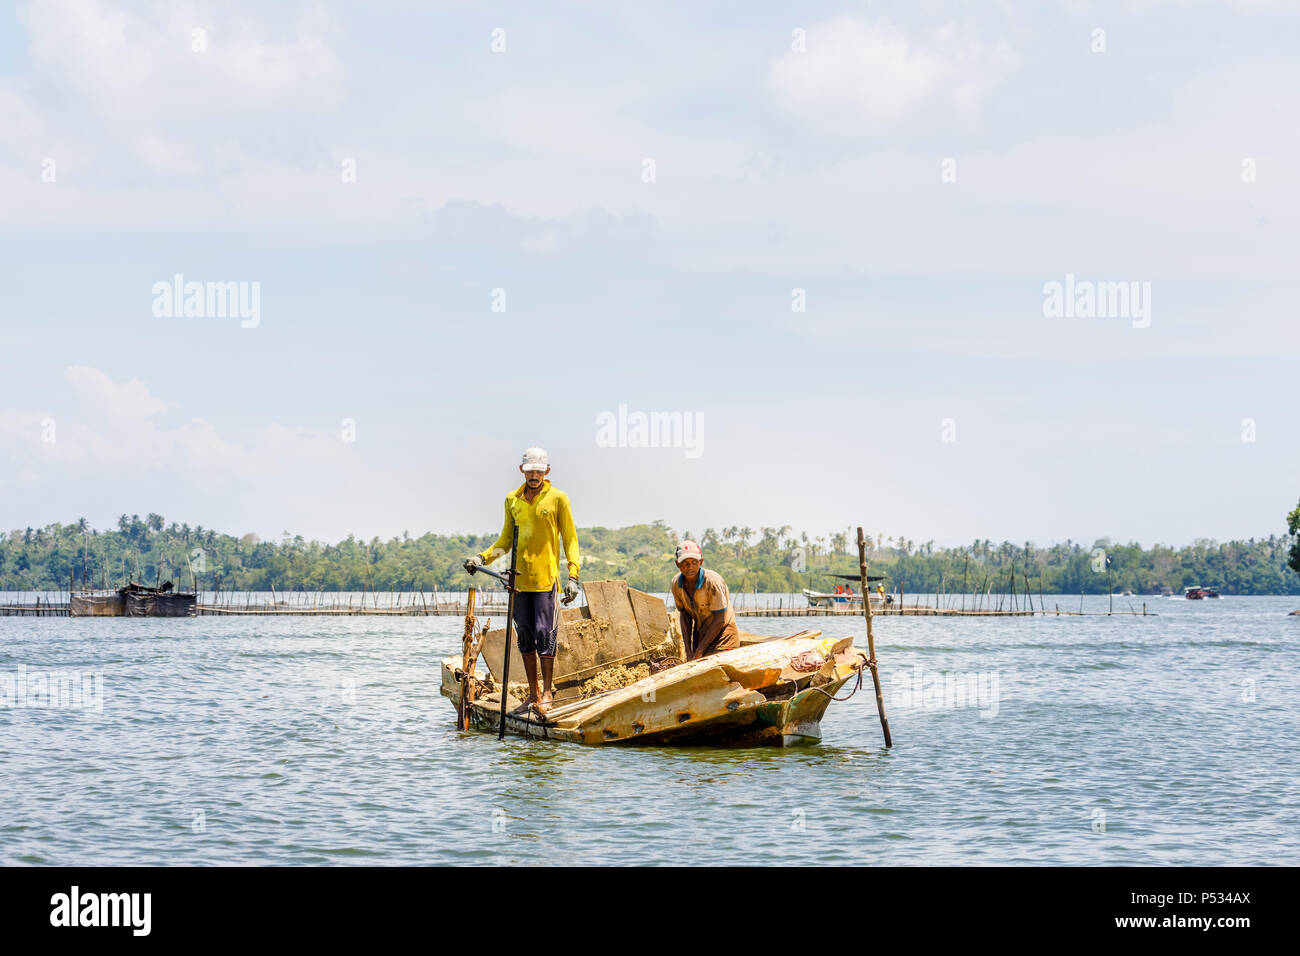 Two local men people illegally excavating sand from a dilapidated boat from the Madu River, Madu Ganga wetlands, south-west Sri Lanka - Stock Image